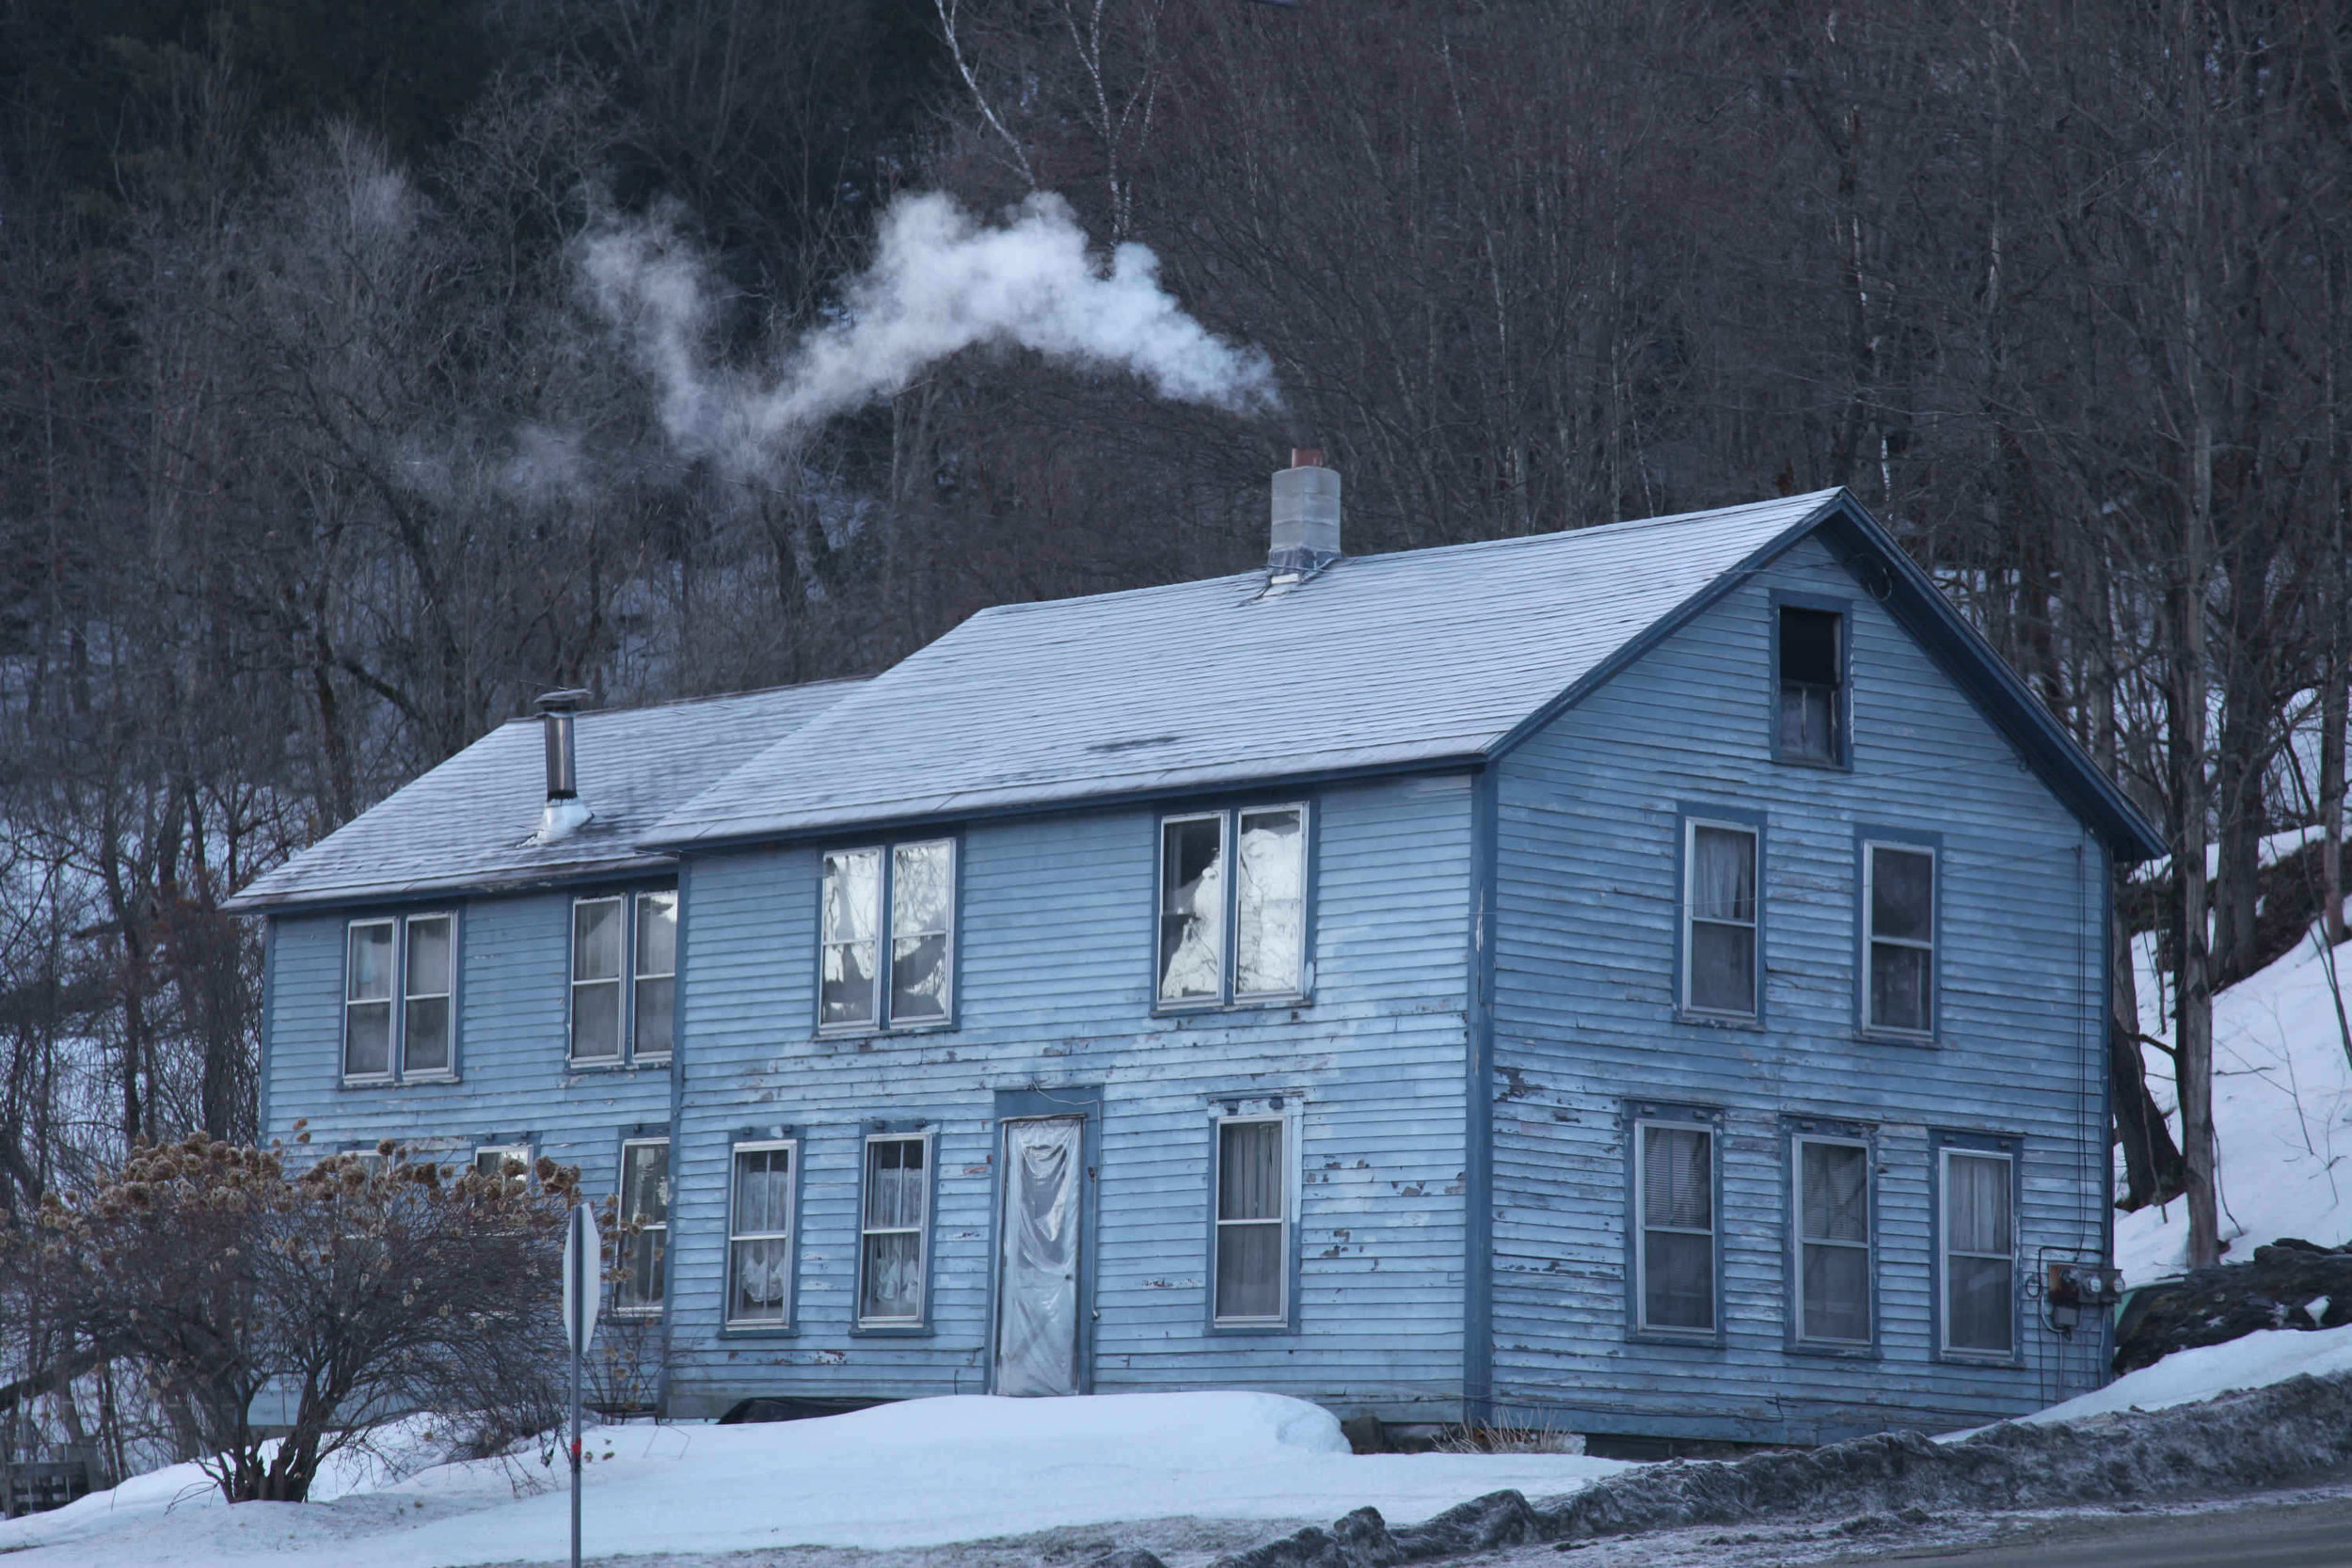 Vermont house in winter